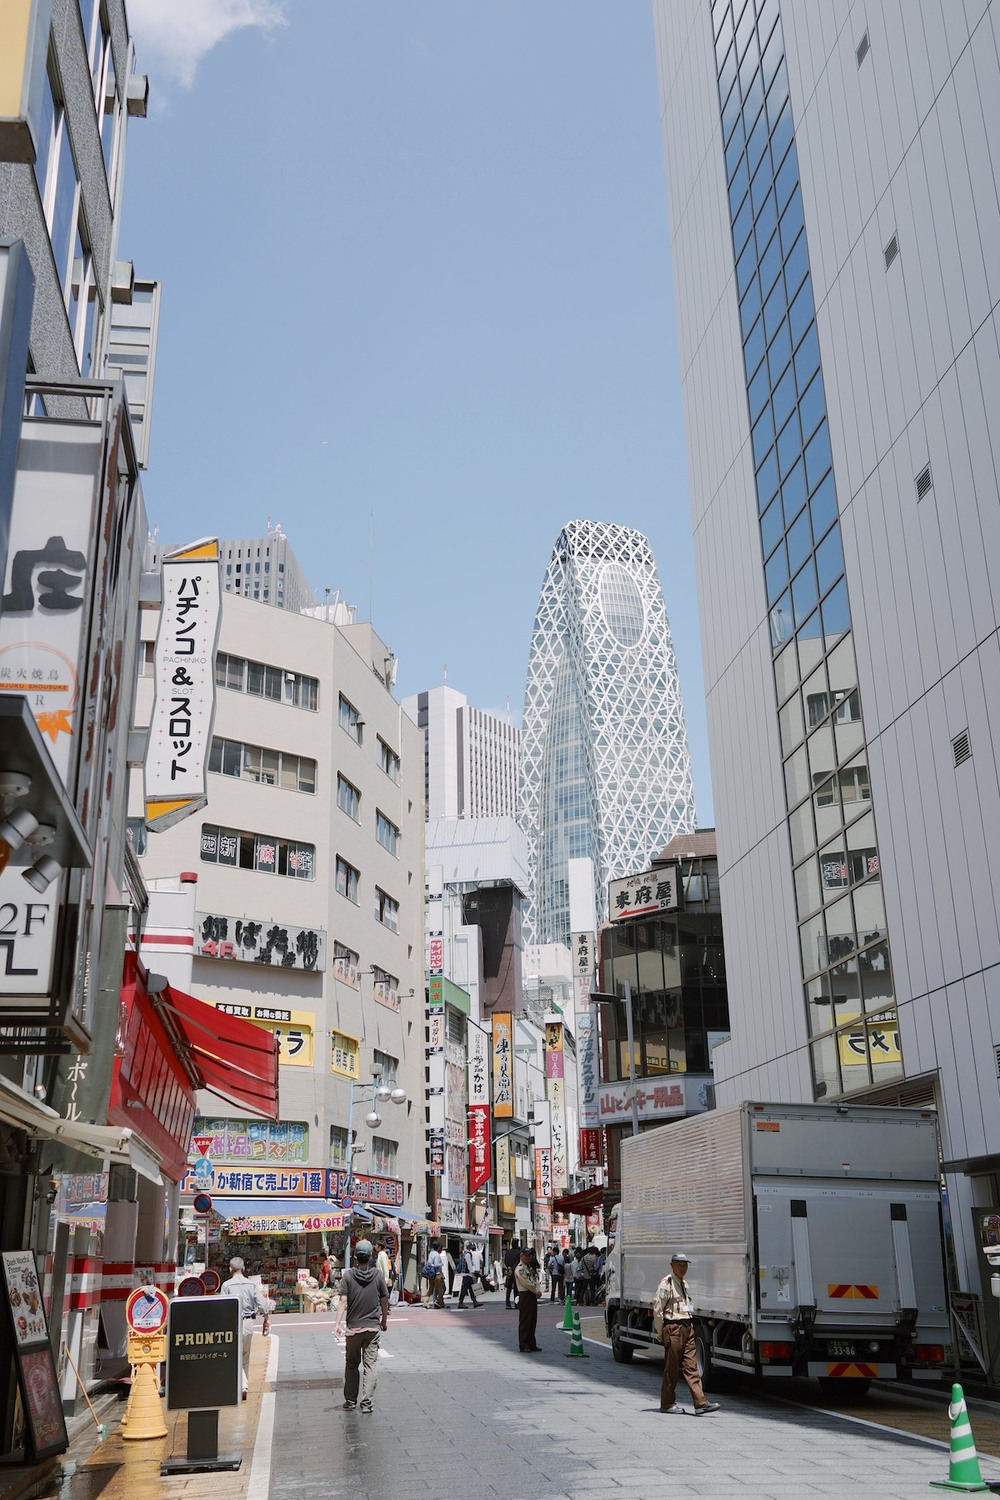 Streets of Shinjuku with the  Mode Gakuen Cocoon Tower  in the background.